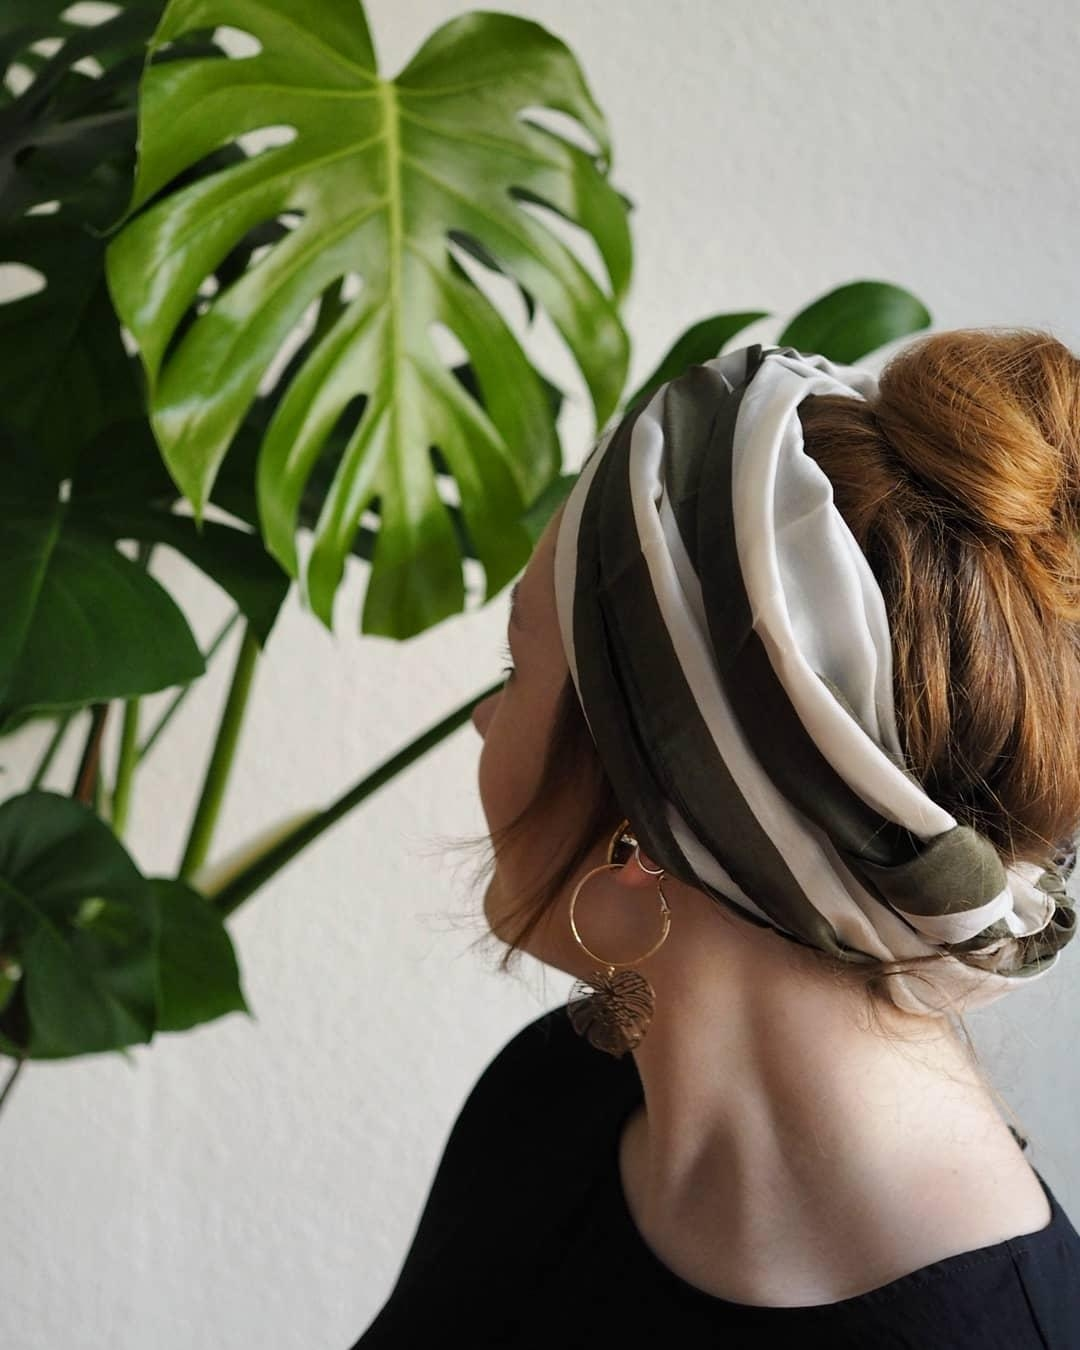 36 Grad und es wird noch heißer. 